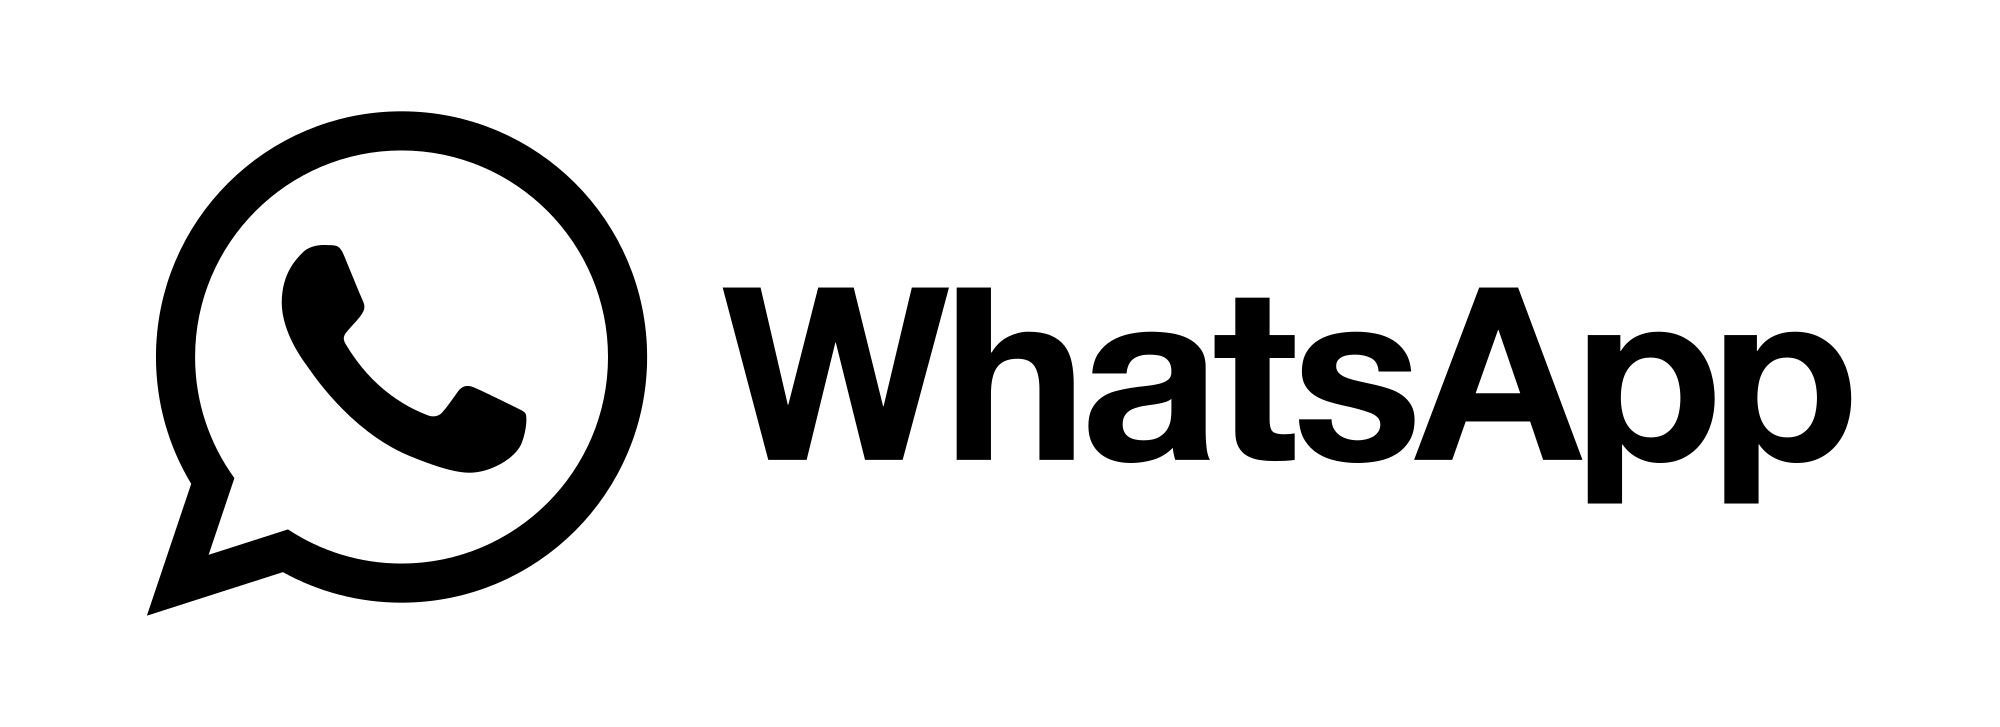 Whatsapp png logo. And brand photos